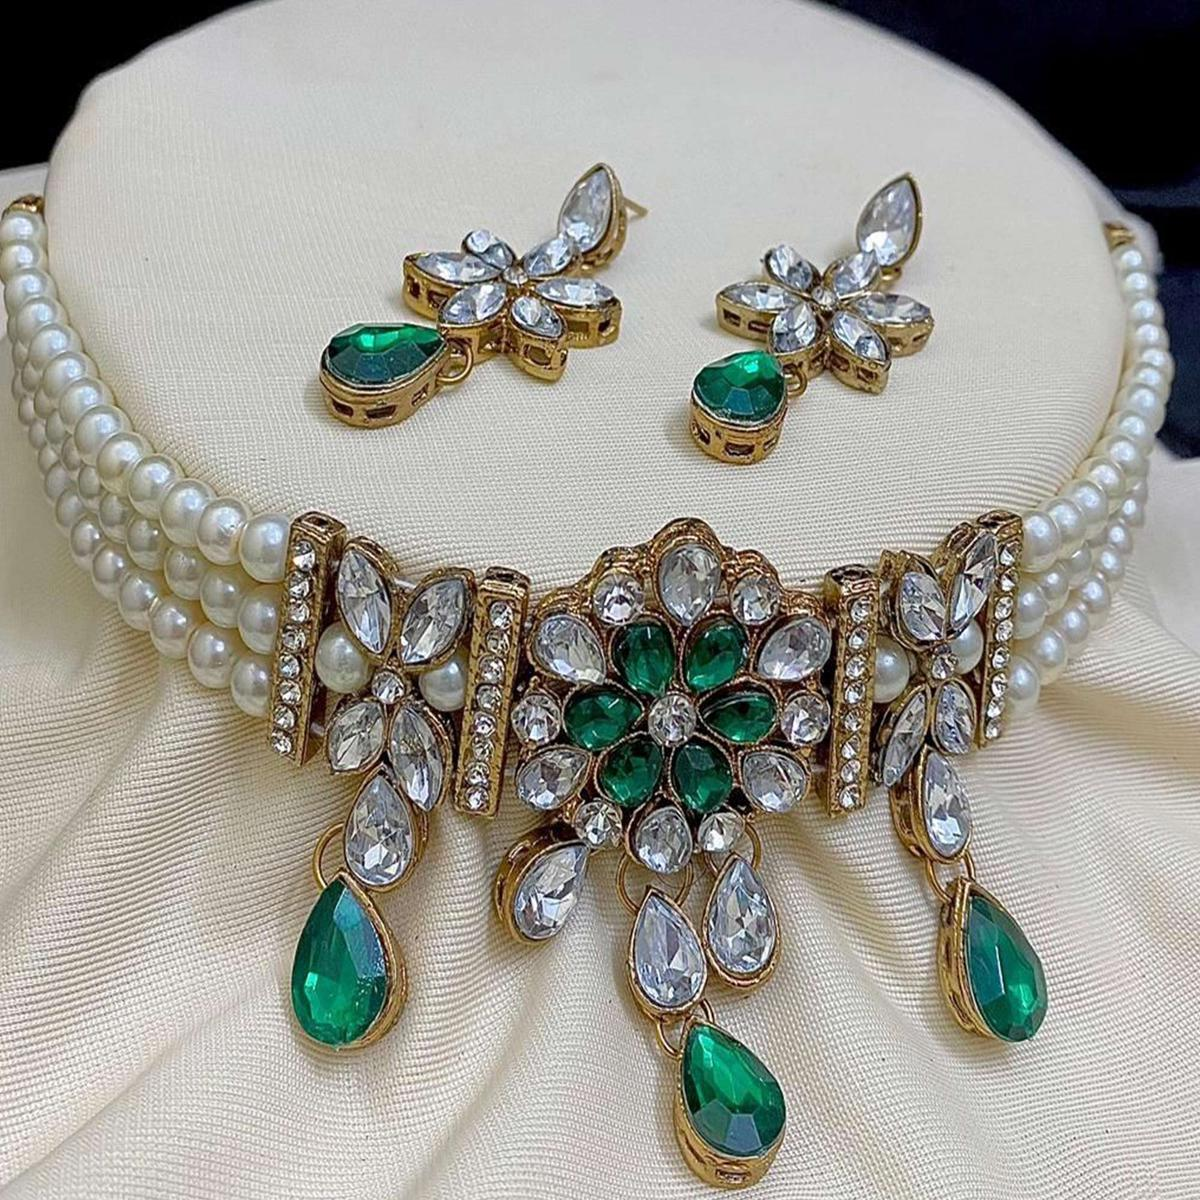 ZaffreCollections -  Trending Green Choker Necklace Set for Women and Girls